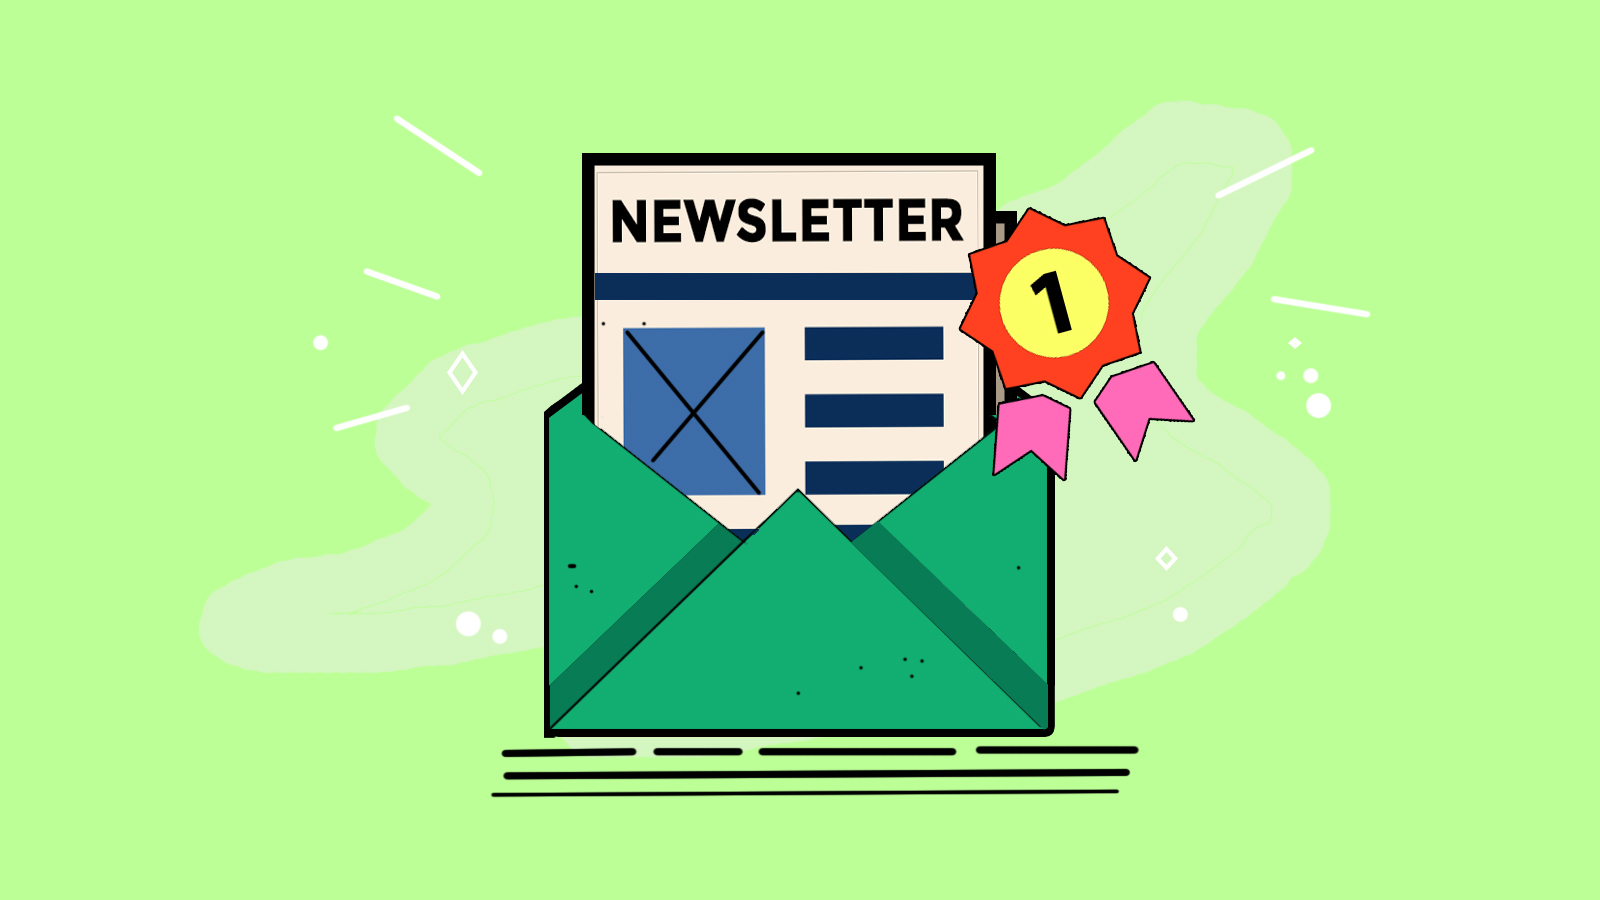 Best Social Media Newsletters to Subscribe To